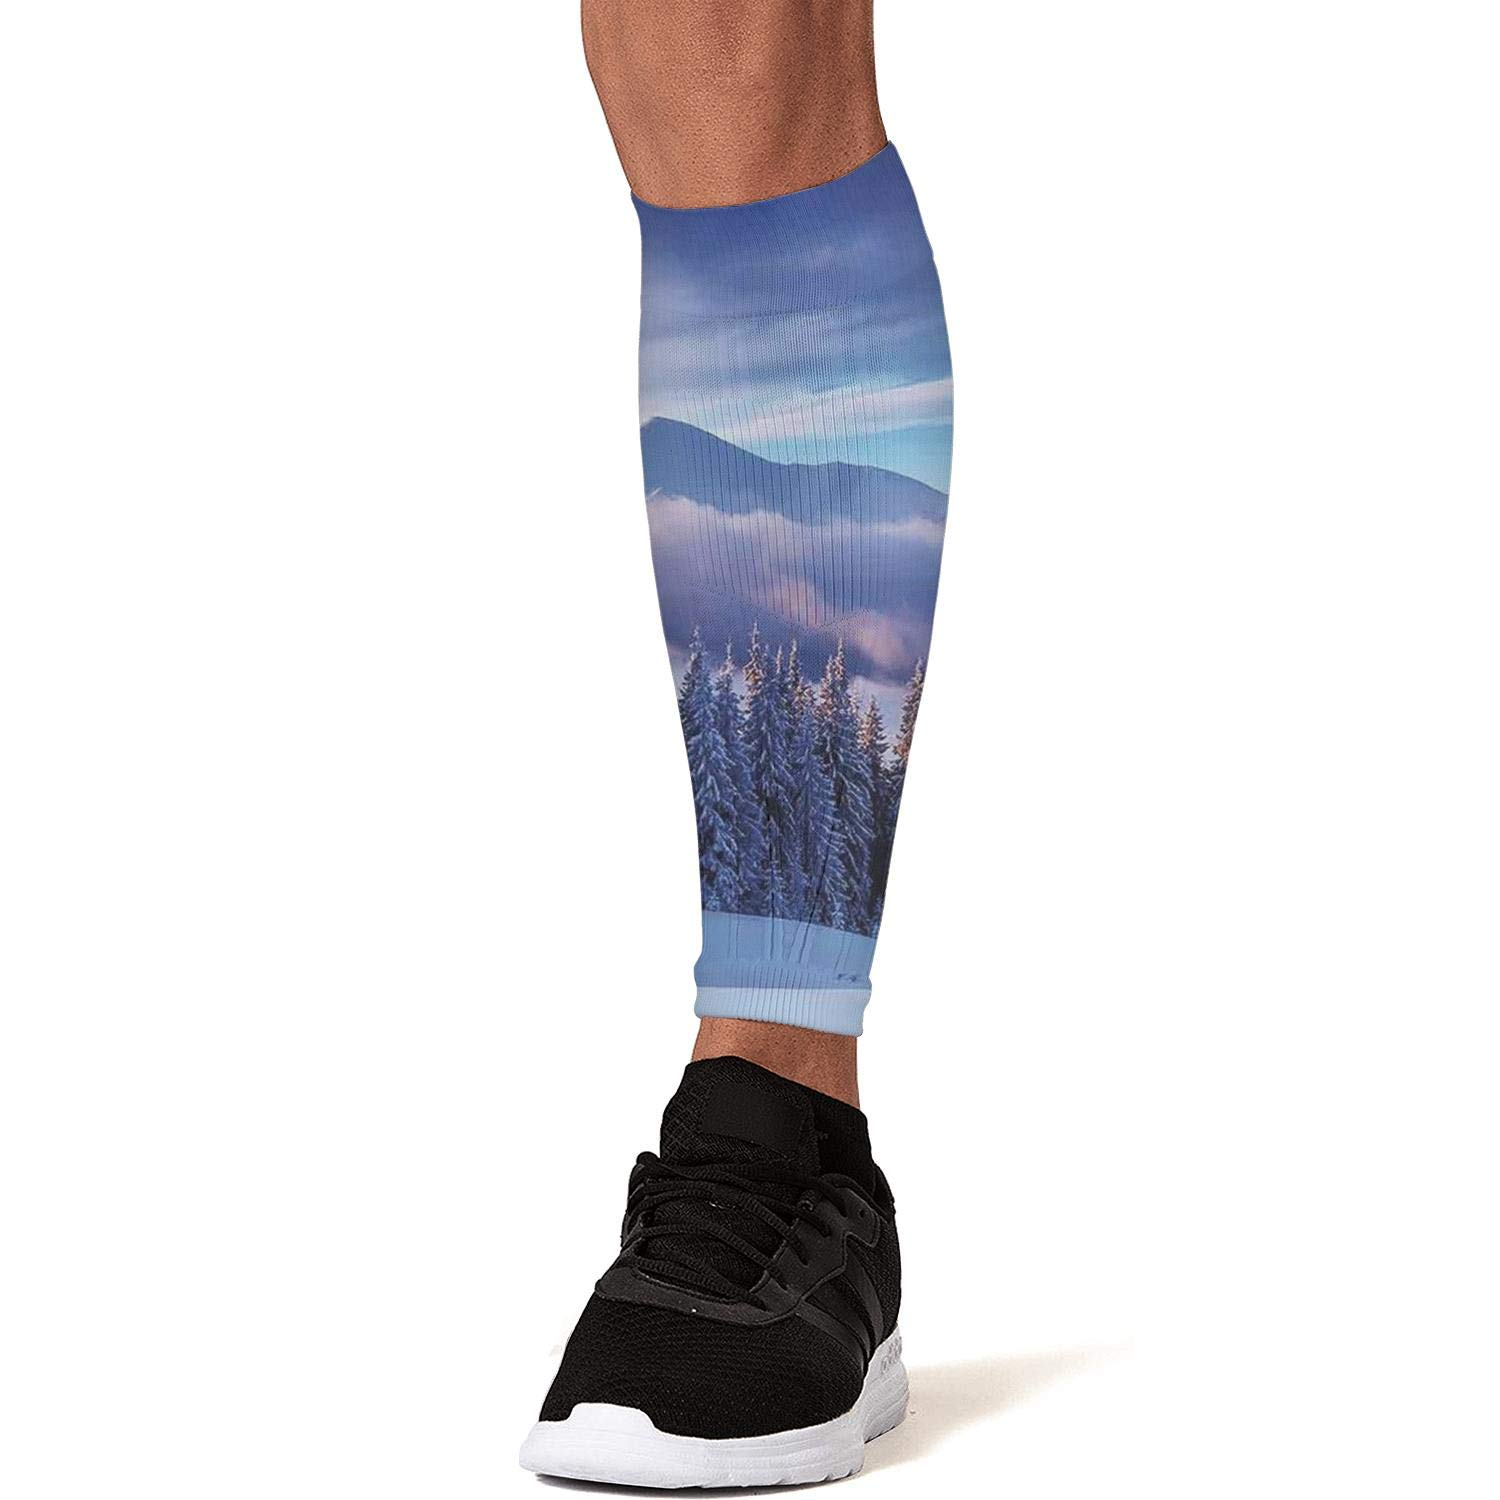 Smilelolly Winter Mountain and Snowy Pine Trees Calf Compression Sleeves Helps Shin Splint Leg Sleeves for Men Women